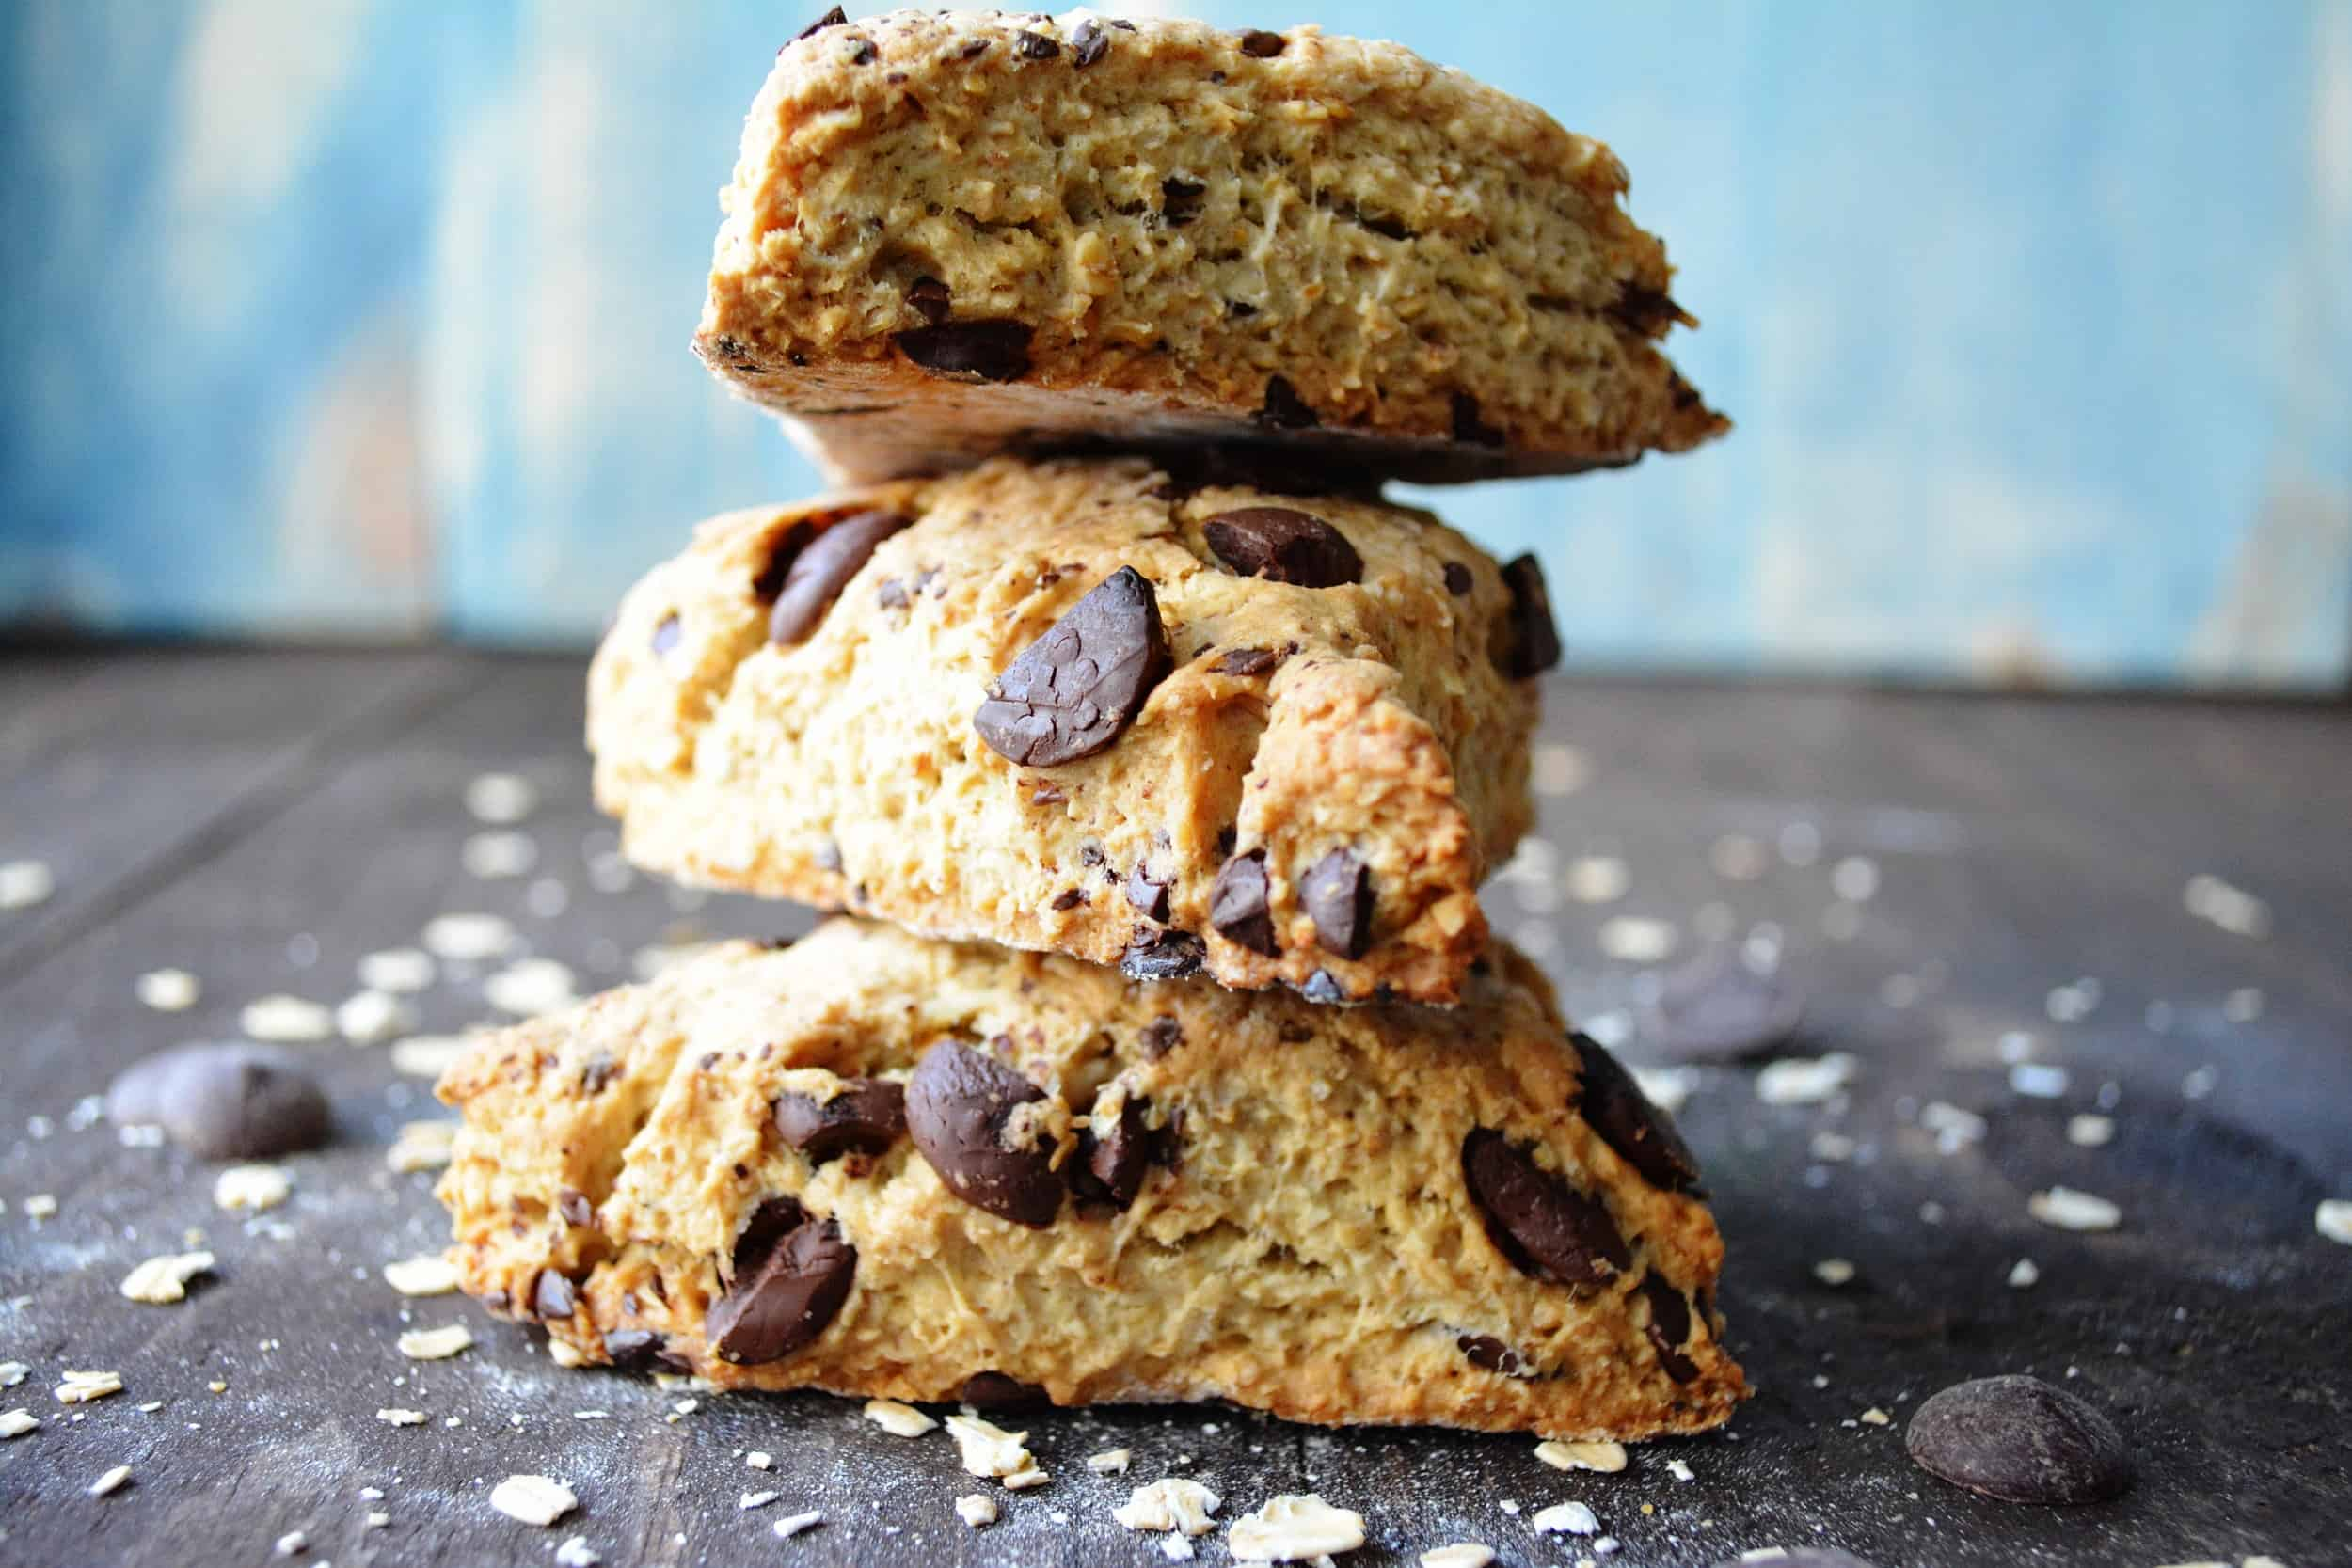 Toasted Oat and Chocolate Scones